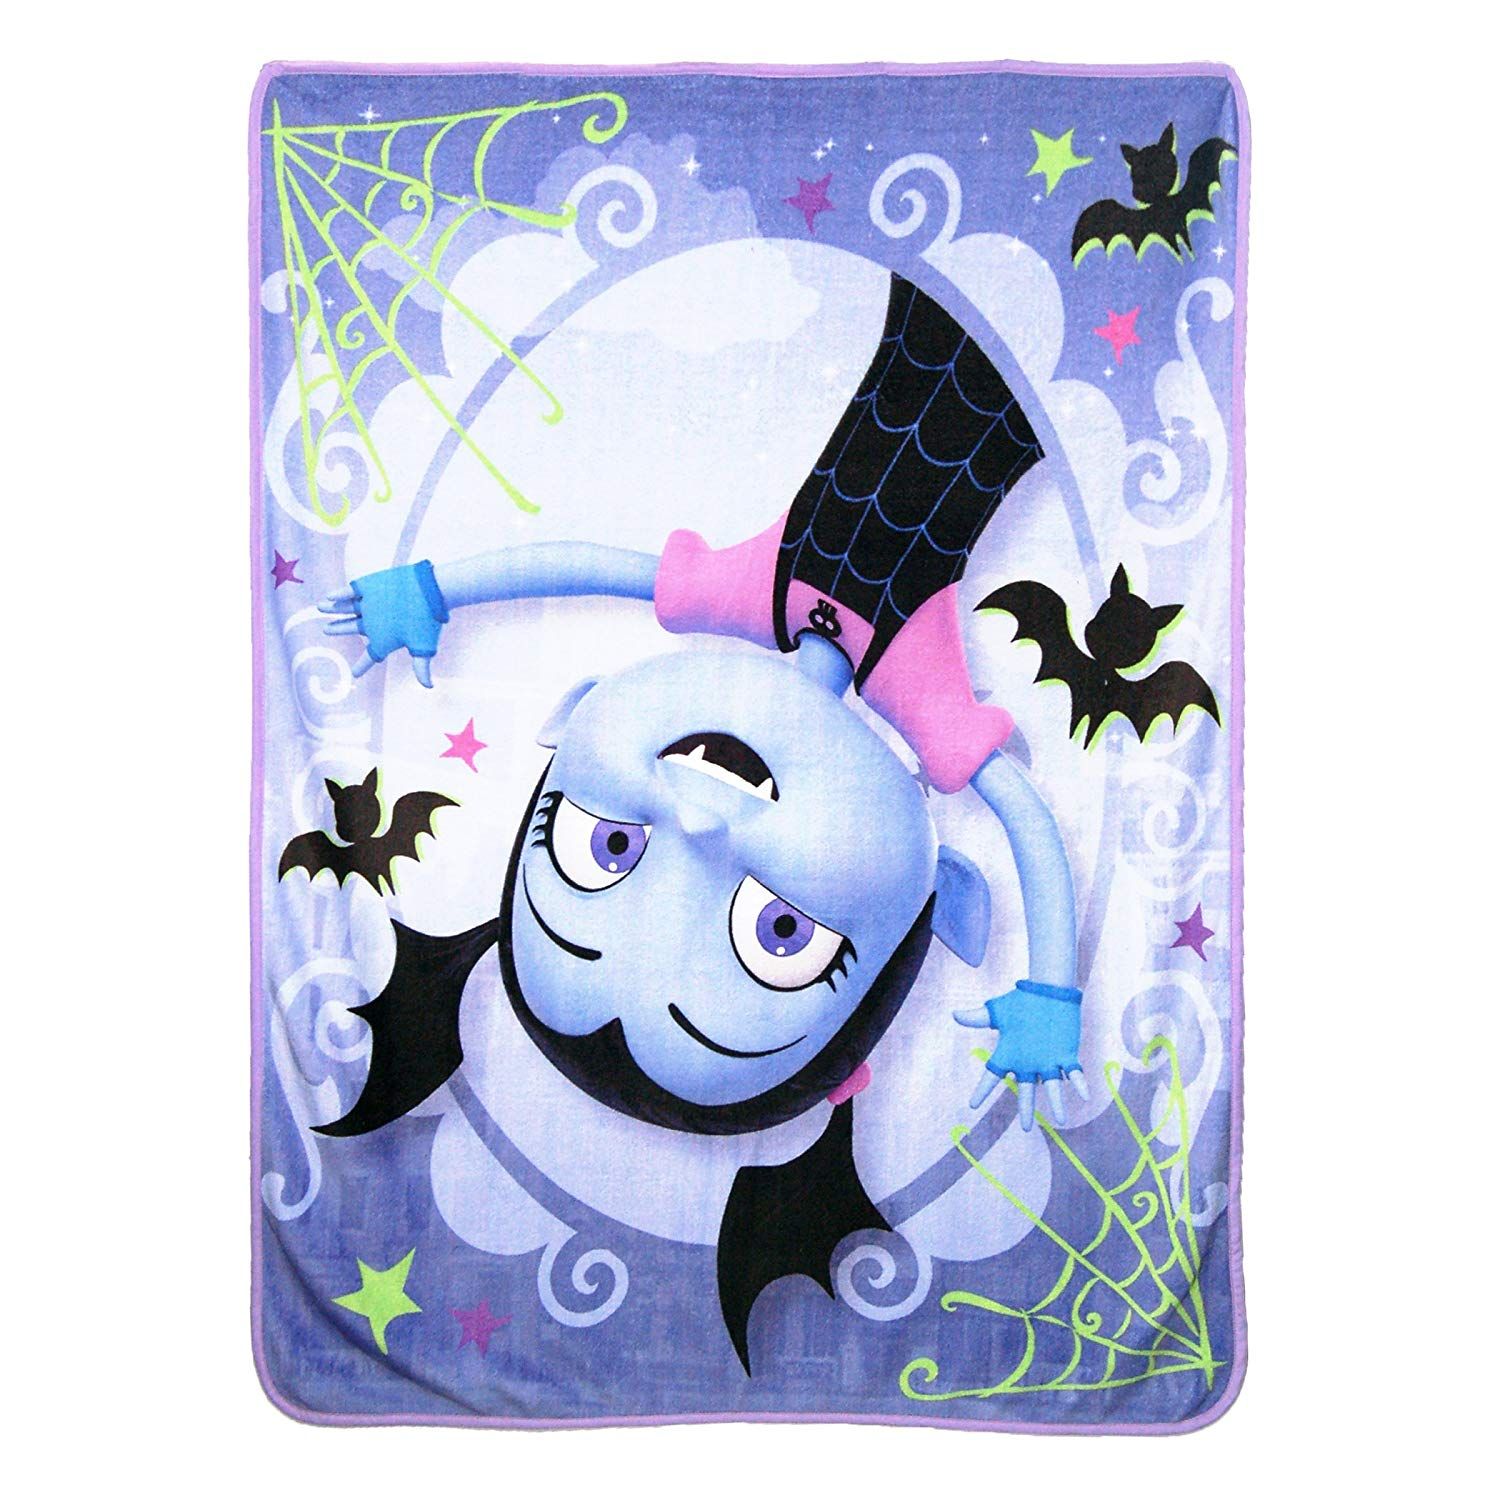 Disney Batty Vee Vampirina Fleece Throw Blanket Kids Home Decor 45 x 60 Inch